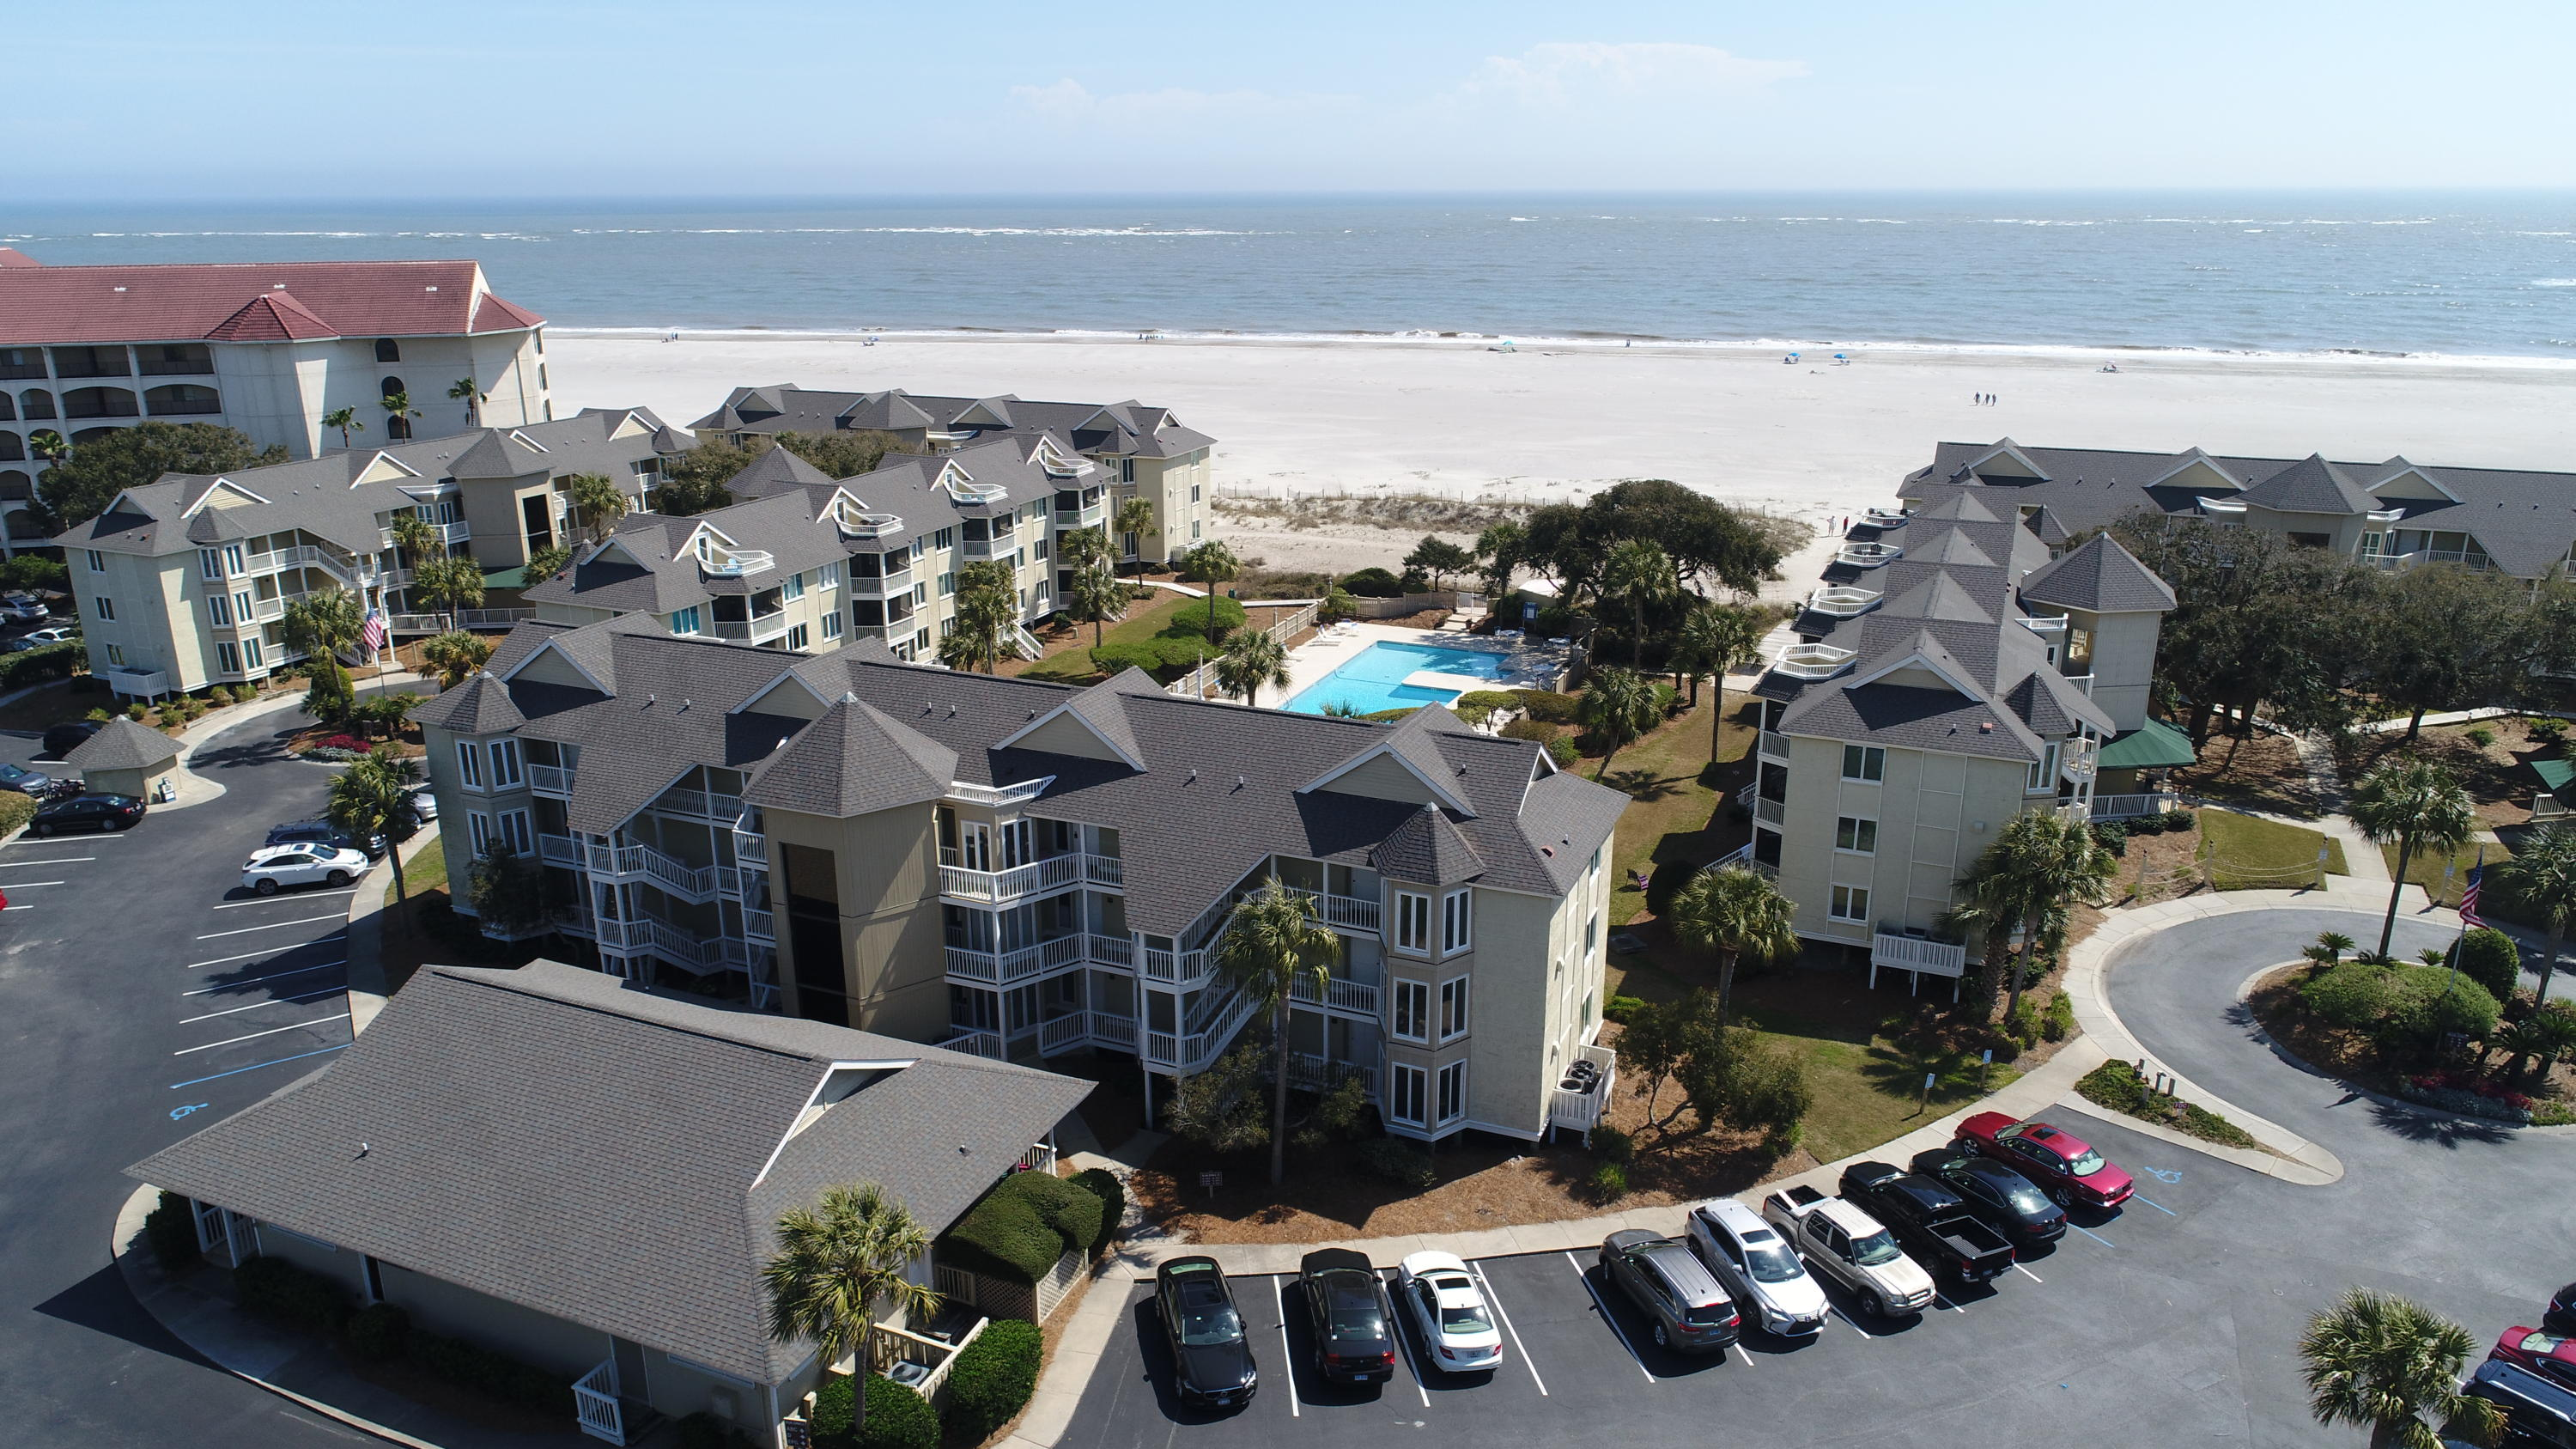 302 Port O Call Isle Of Palms, SC 29451